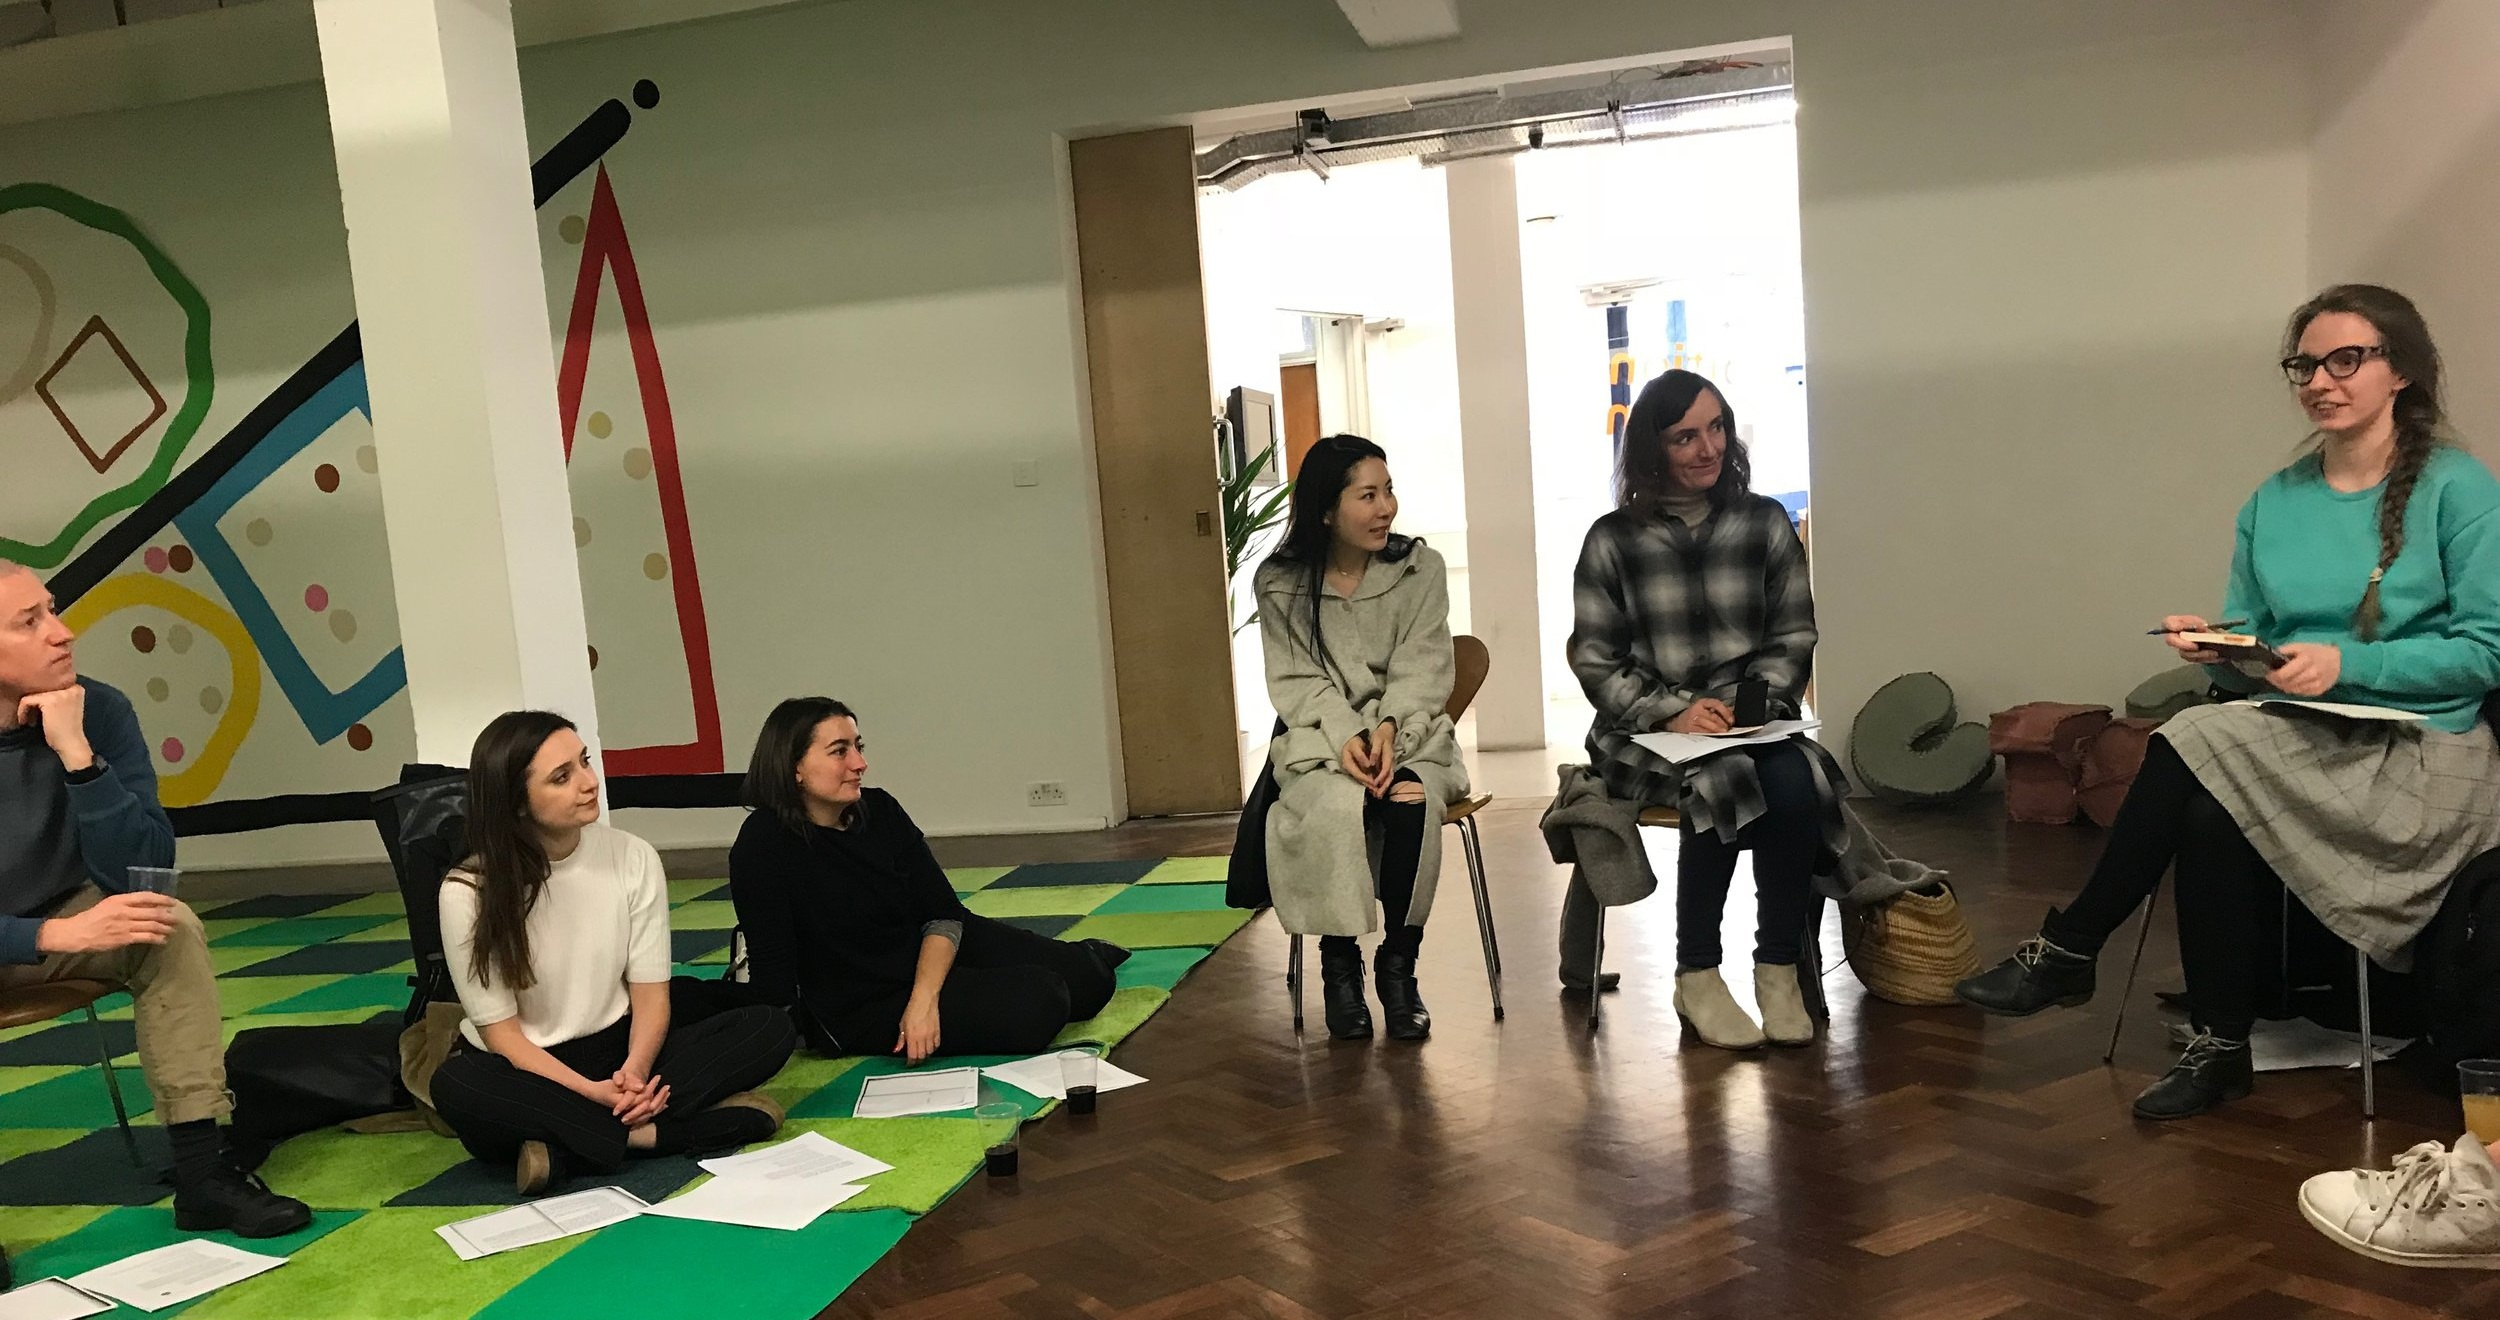 Members of the Feminist Duration Reading Group explore Theresa Hak Kyung Cha's Dictee in a session led by Morgane Conti (right), 1 May 2018. Photo Helena Reckitt.